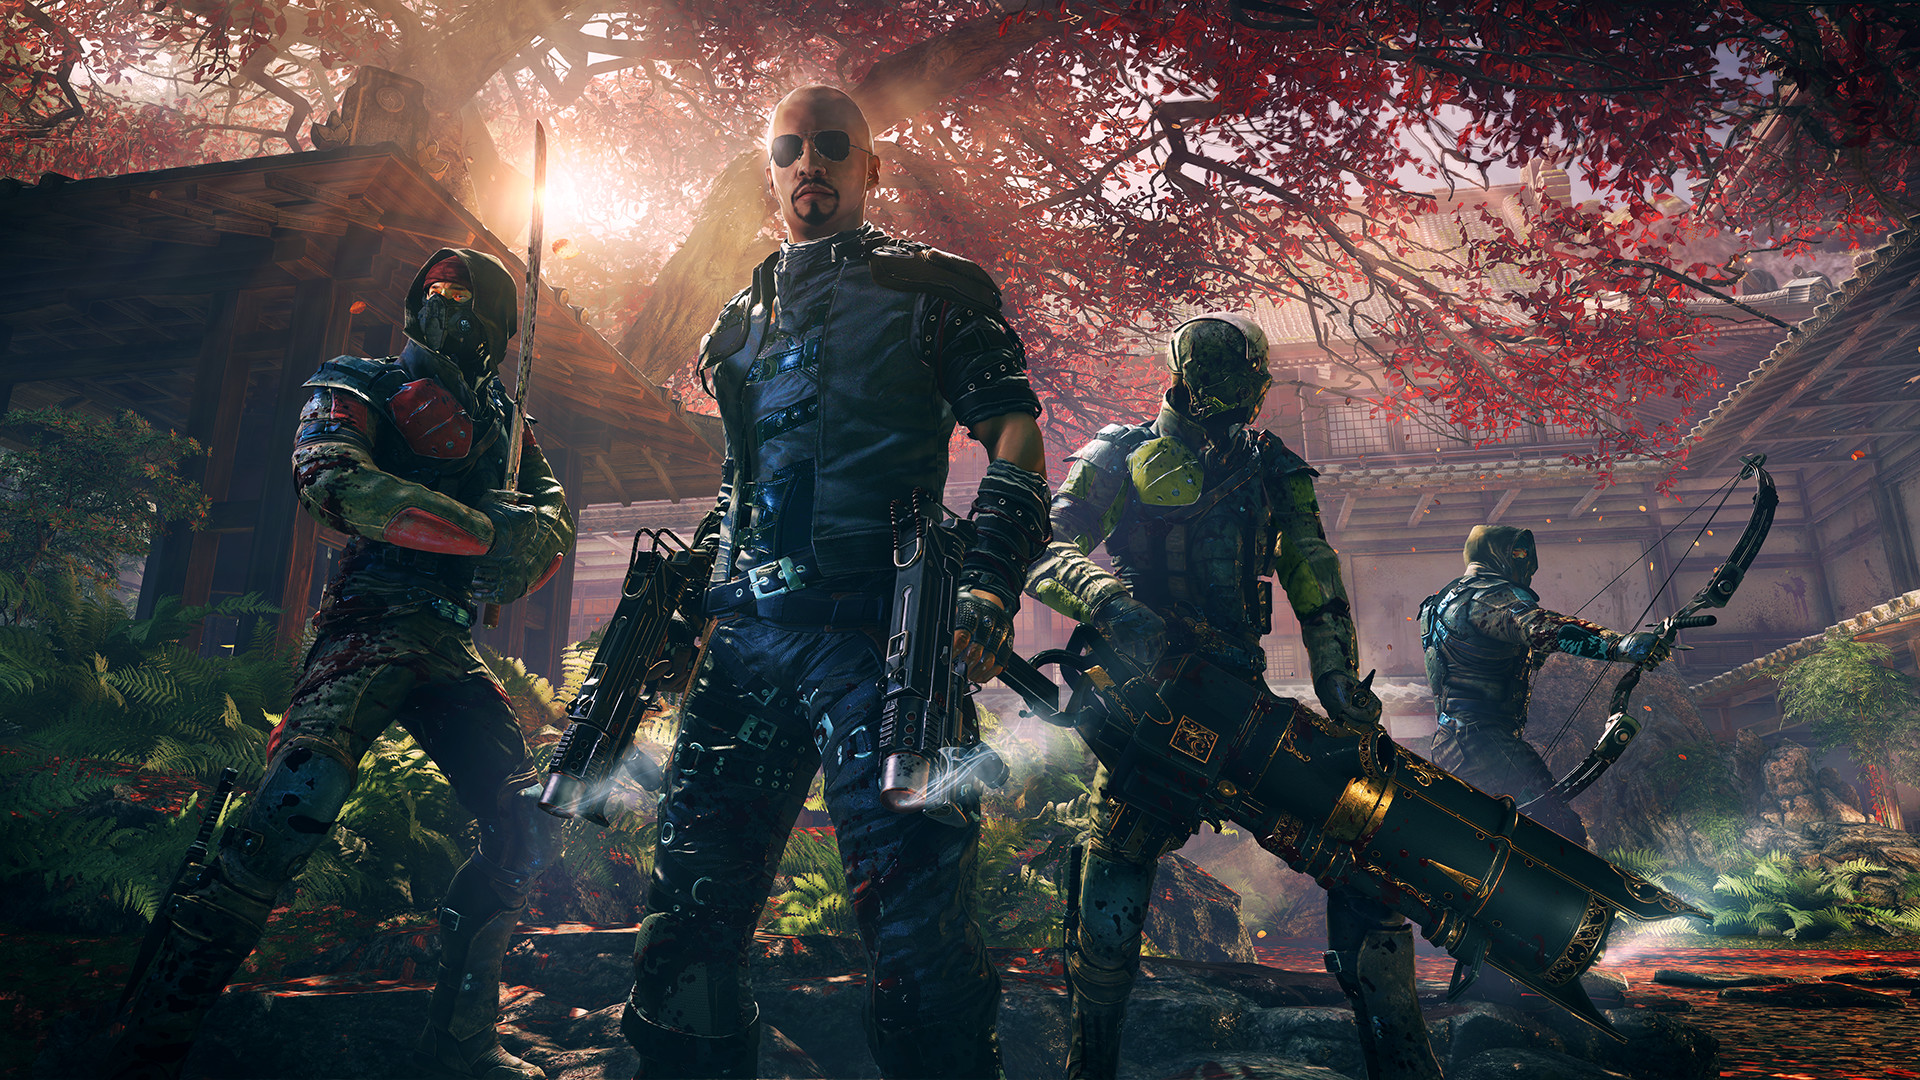 download shadow warrior 2 deluxe edition-codex cracked full version singlelink iso rar multi 8 language free for pc